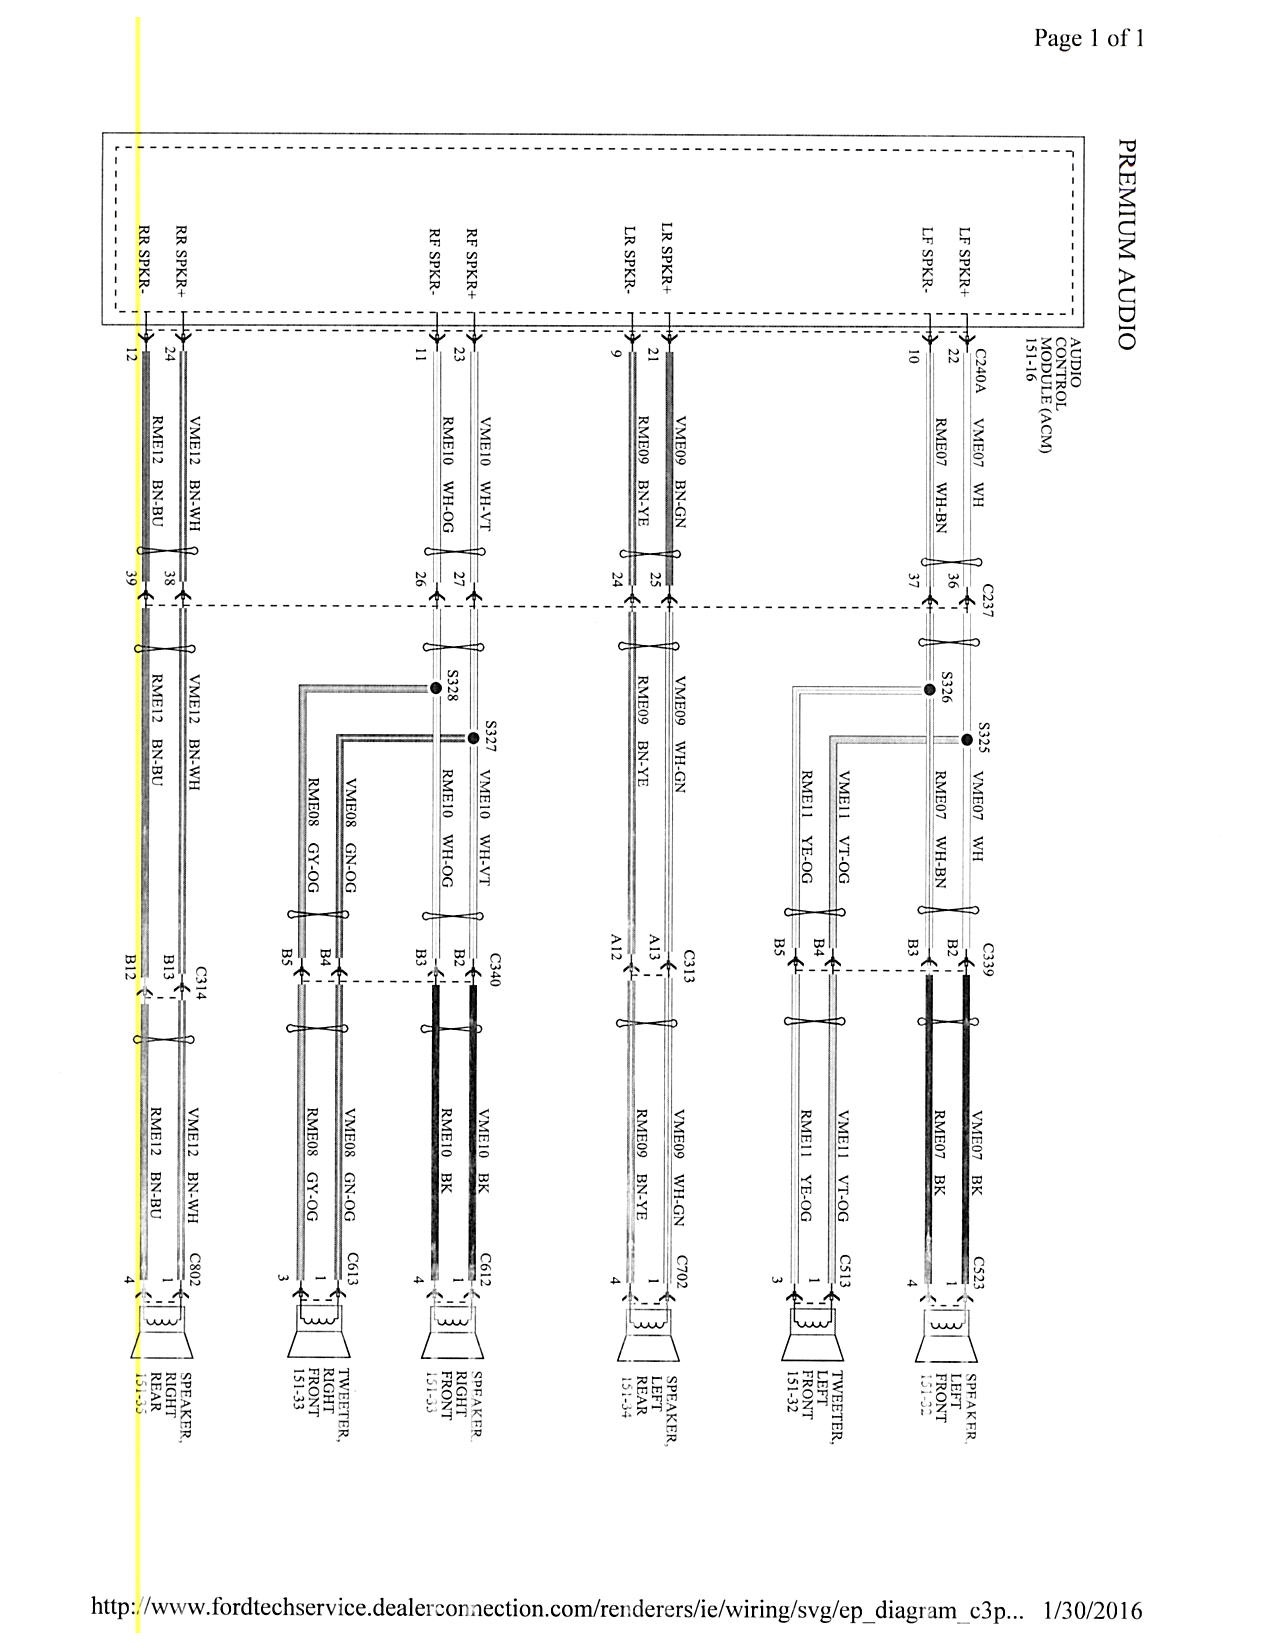 ford focus stereo wiring diagram 2000 asco 2003 radio download